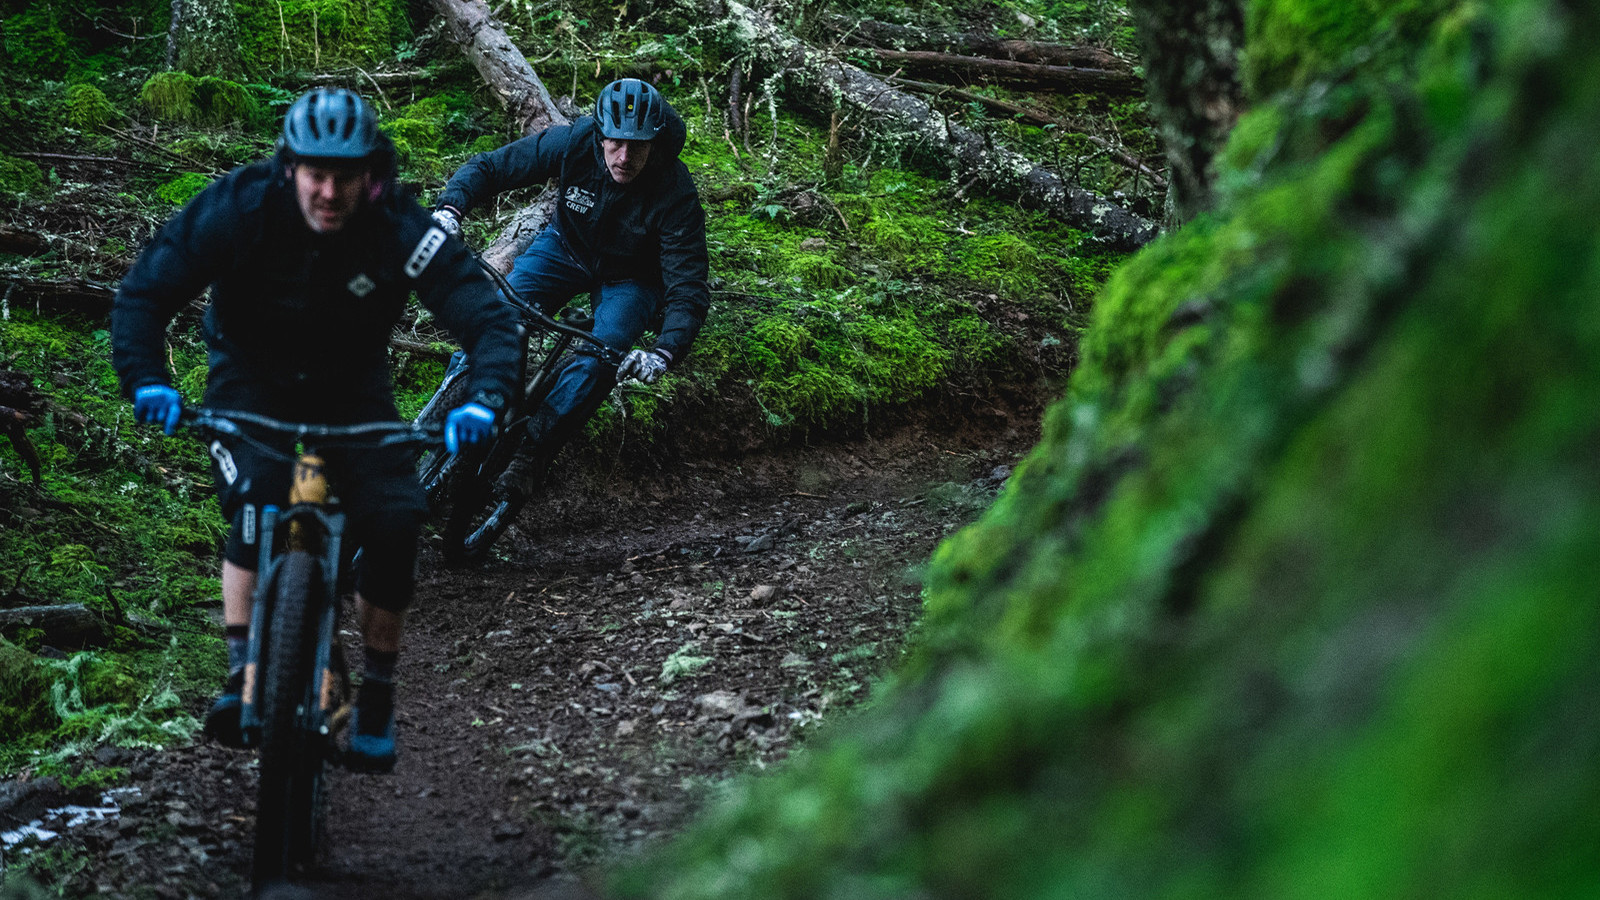 When Winter Has the Trails Buried, Transition Bikes Head Across the Bay